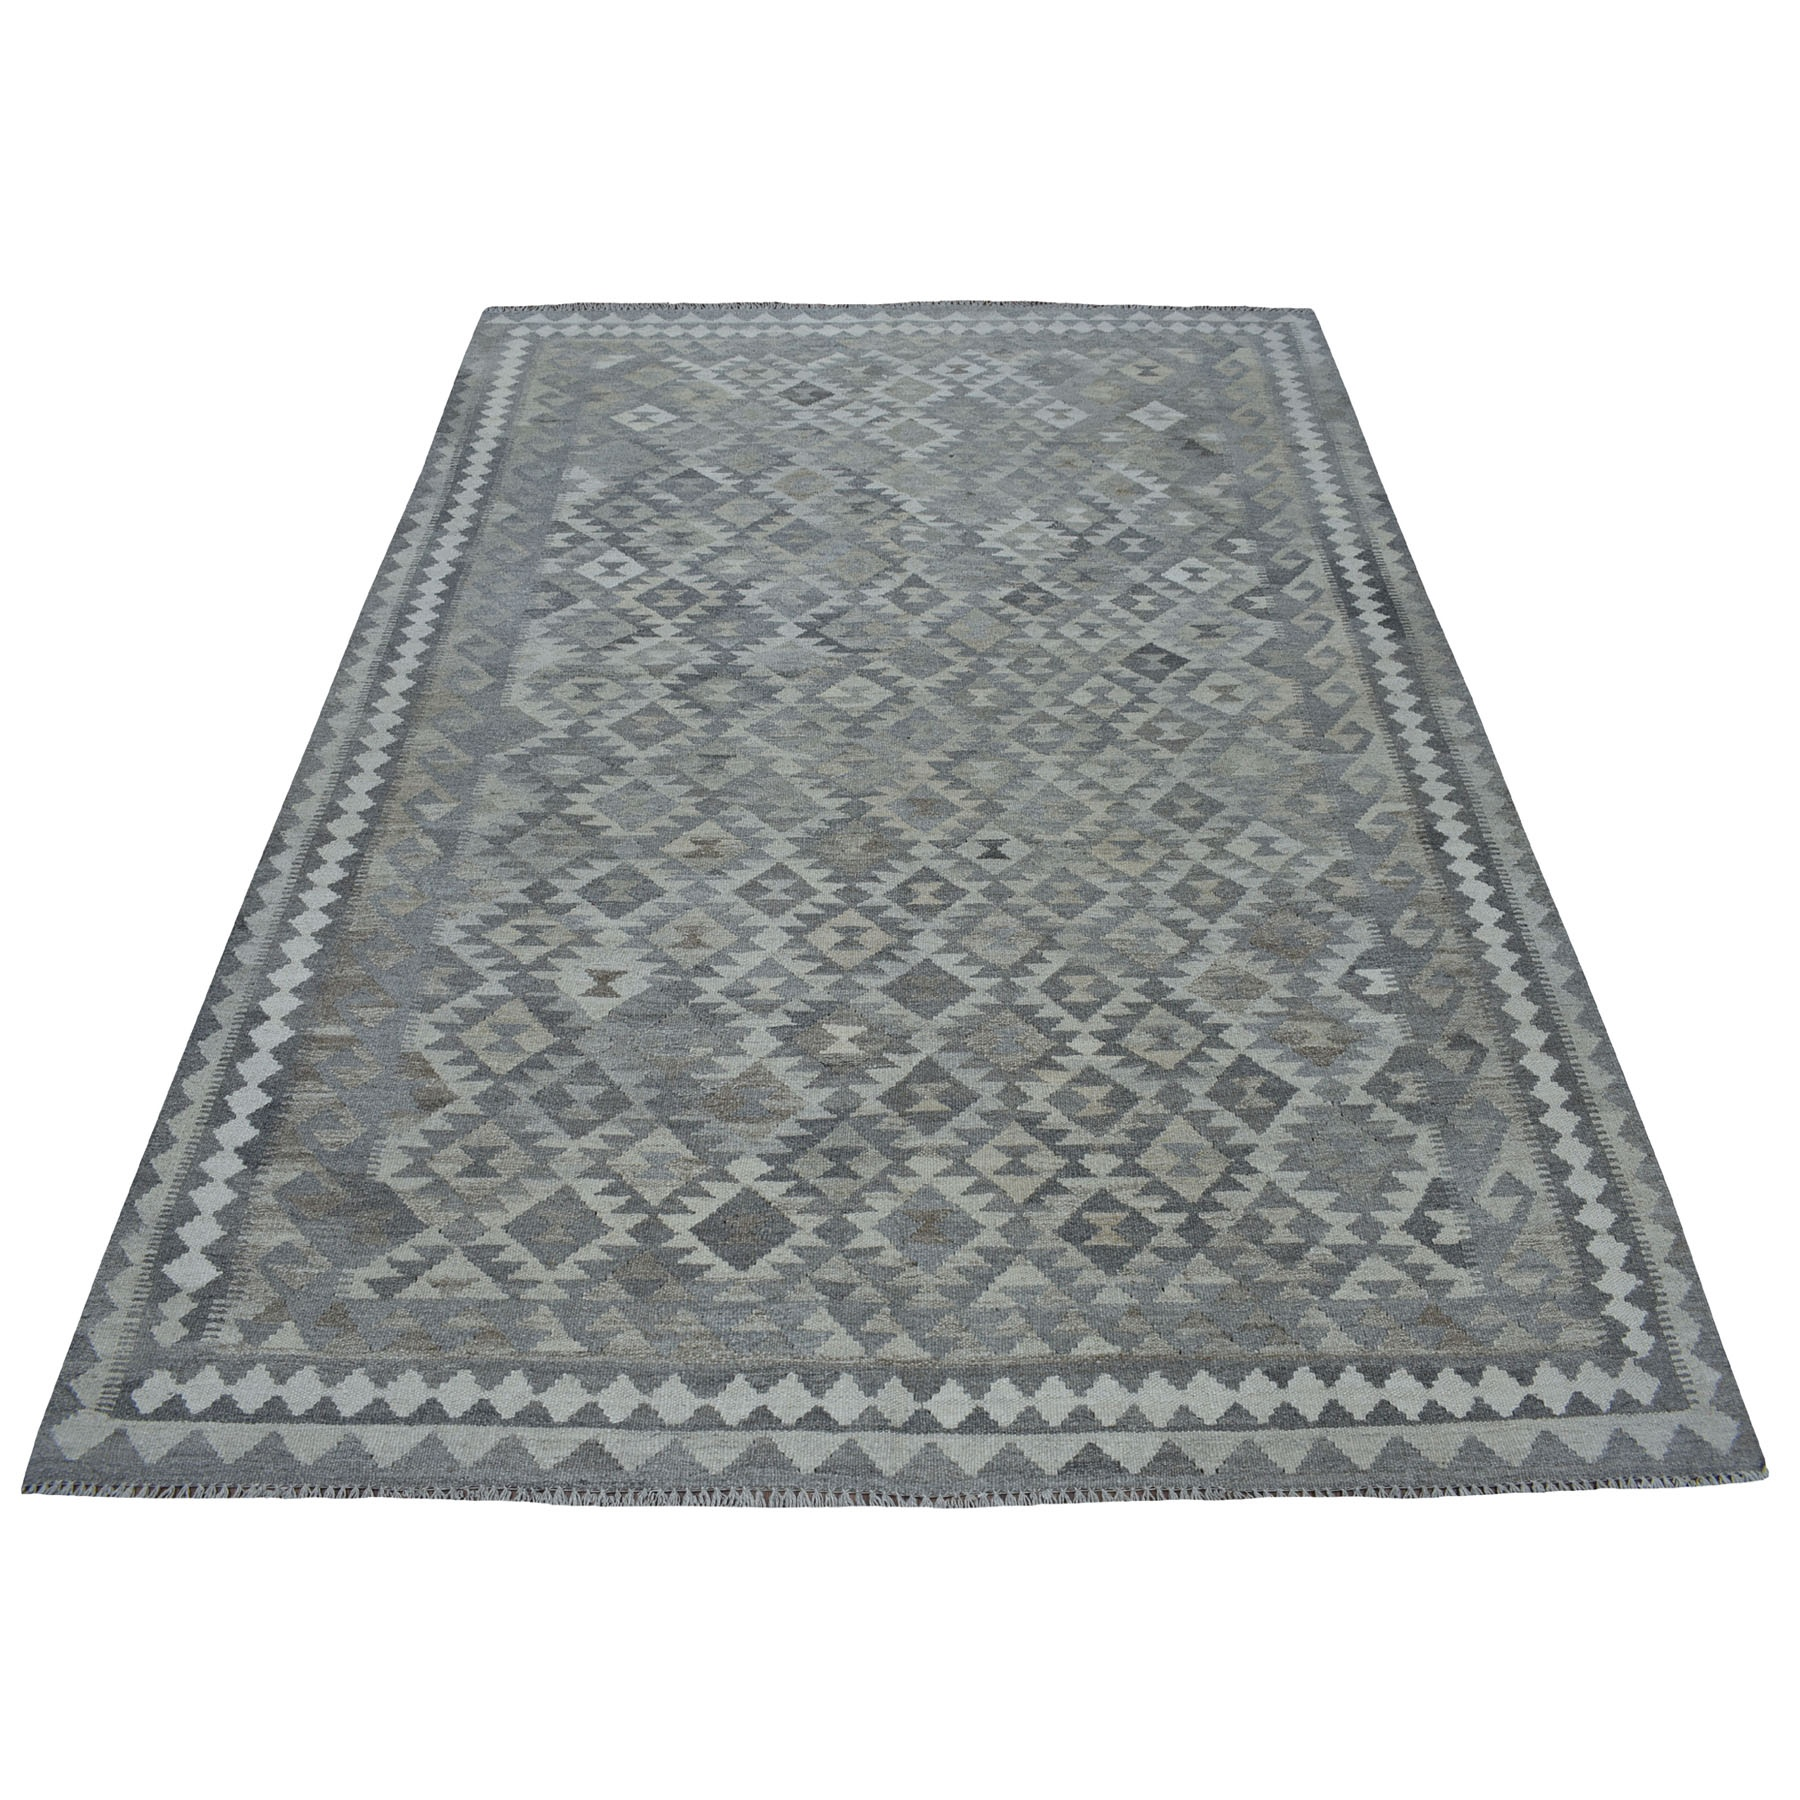 """5'7""""X8' Undyed Reversible Natural Wool Afghan Kilim Hand Woven Oriental Rug moaec0de"""